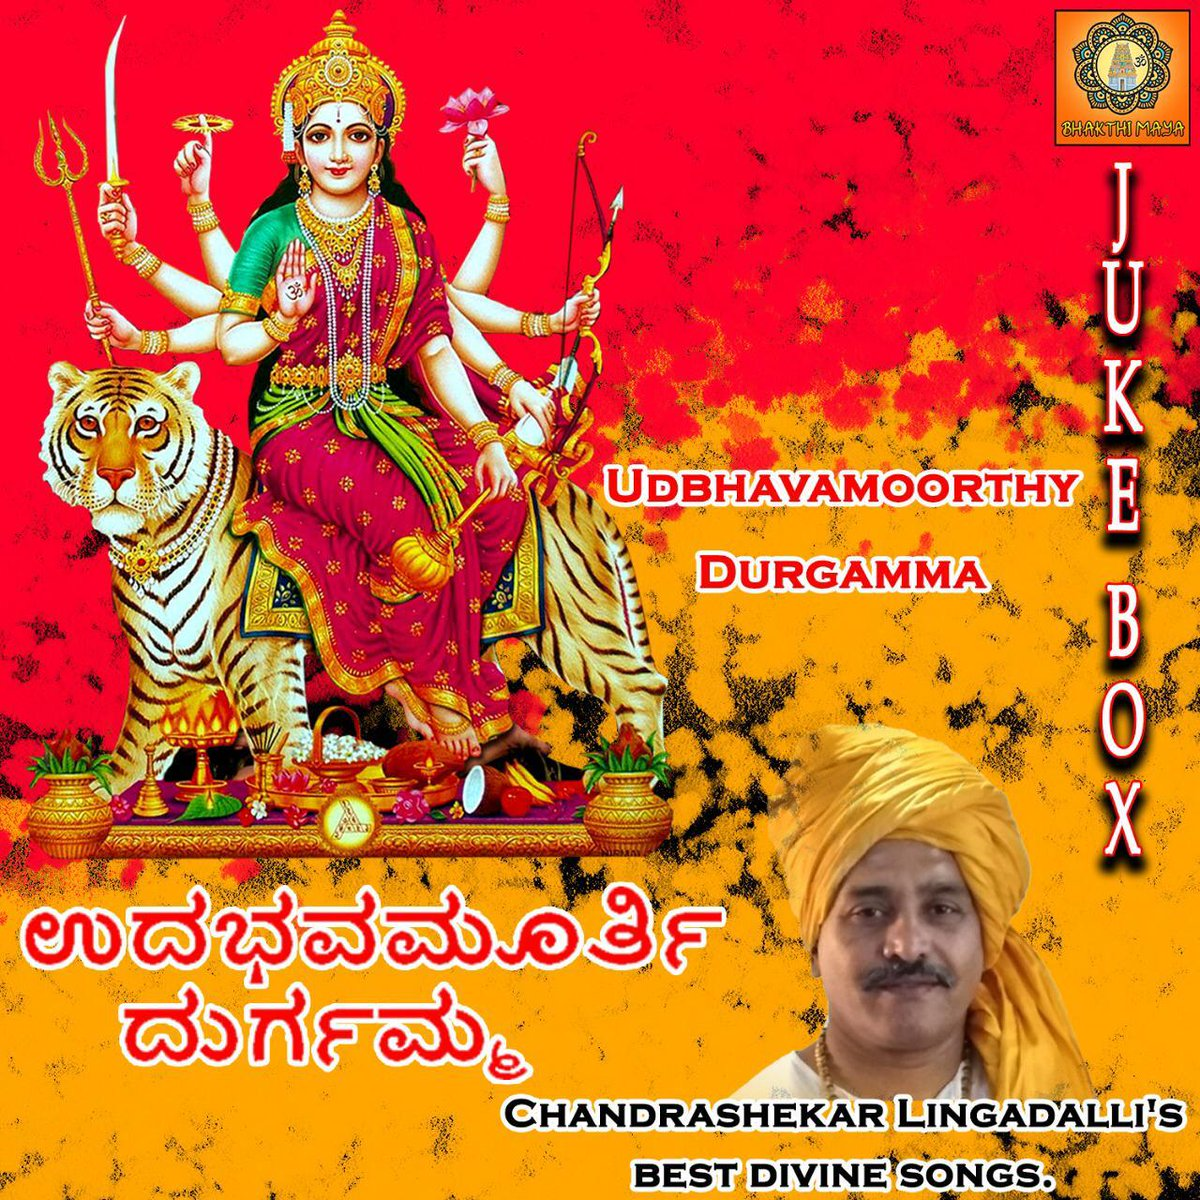 Tribute to Chandrashekar Lingadalli!!! 🎵 Begin your day with Chandrashekar Lingadalli's best divine songs! Listen Now :    #durgamaa #udbhavamoorthy #Chandrashekar #dussehraspecial #kannada #LordDurga #BhakthiSongs #devotionalsongs #bhakthimaya